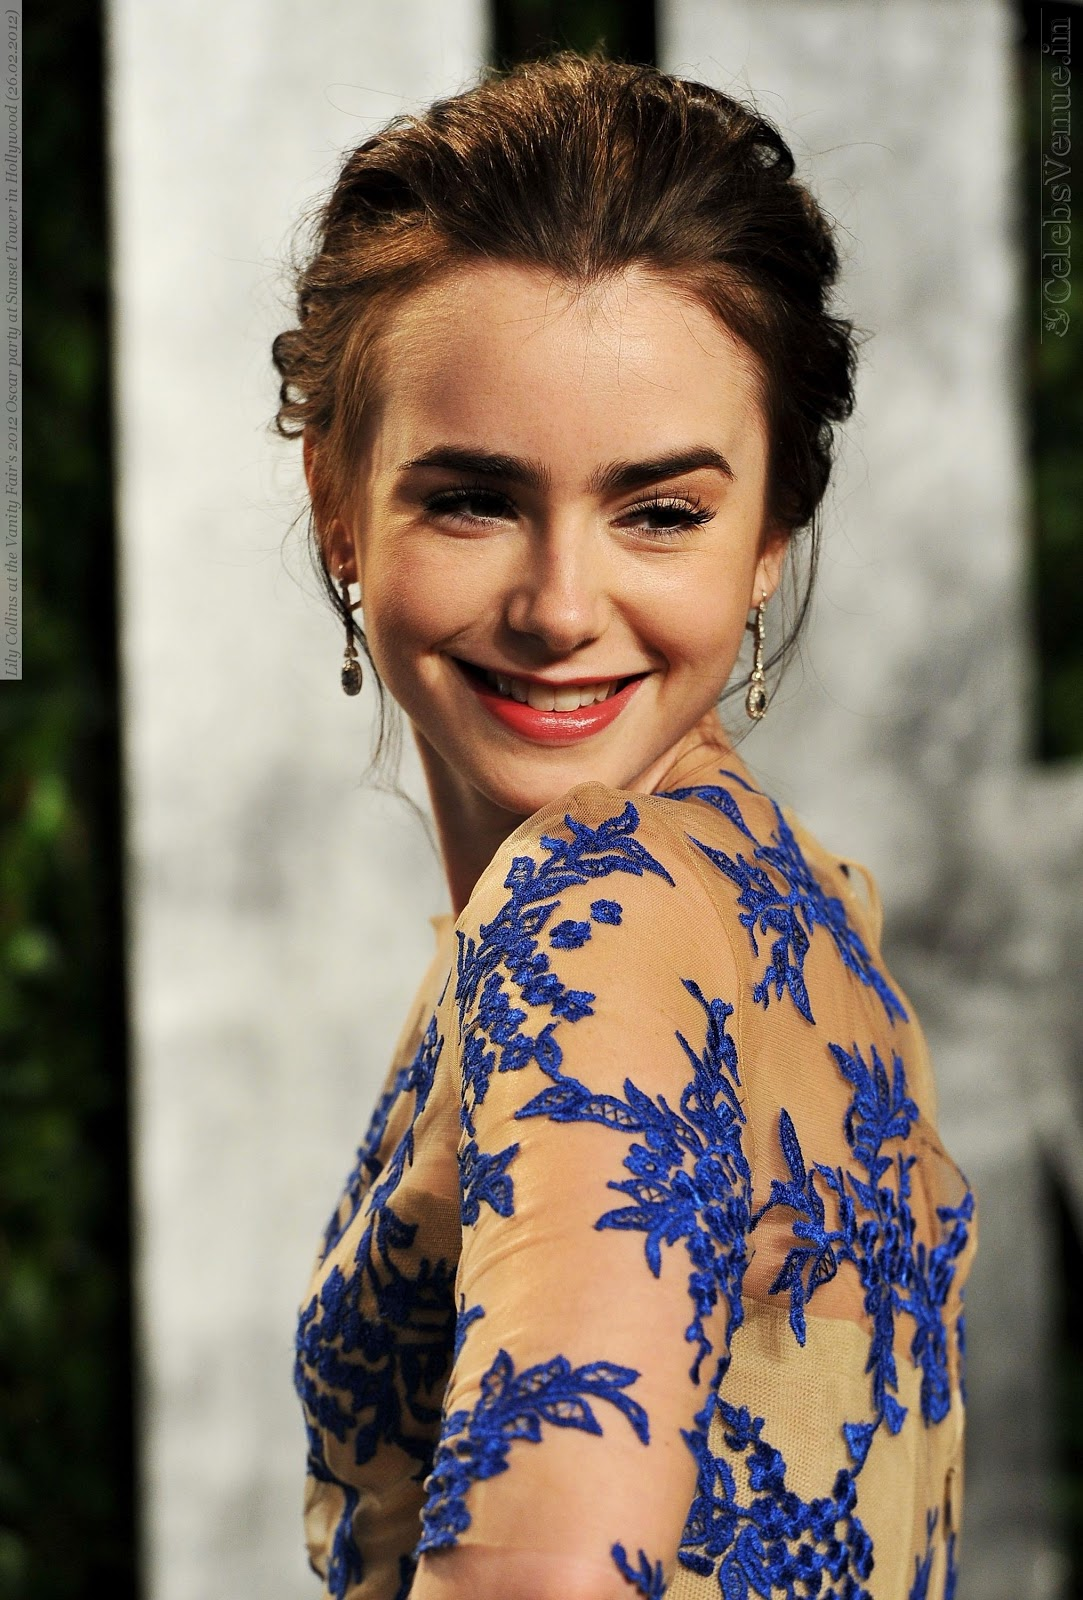 Rules Don't Apply actress Lily Collins HD Photos & Wallpapers